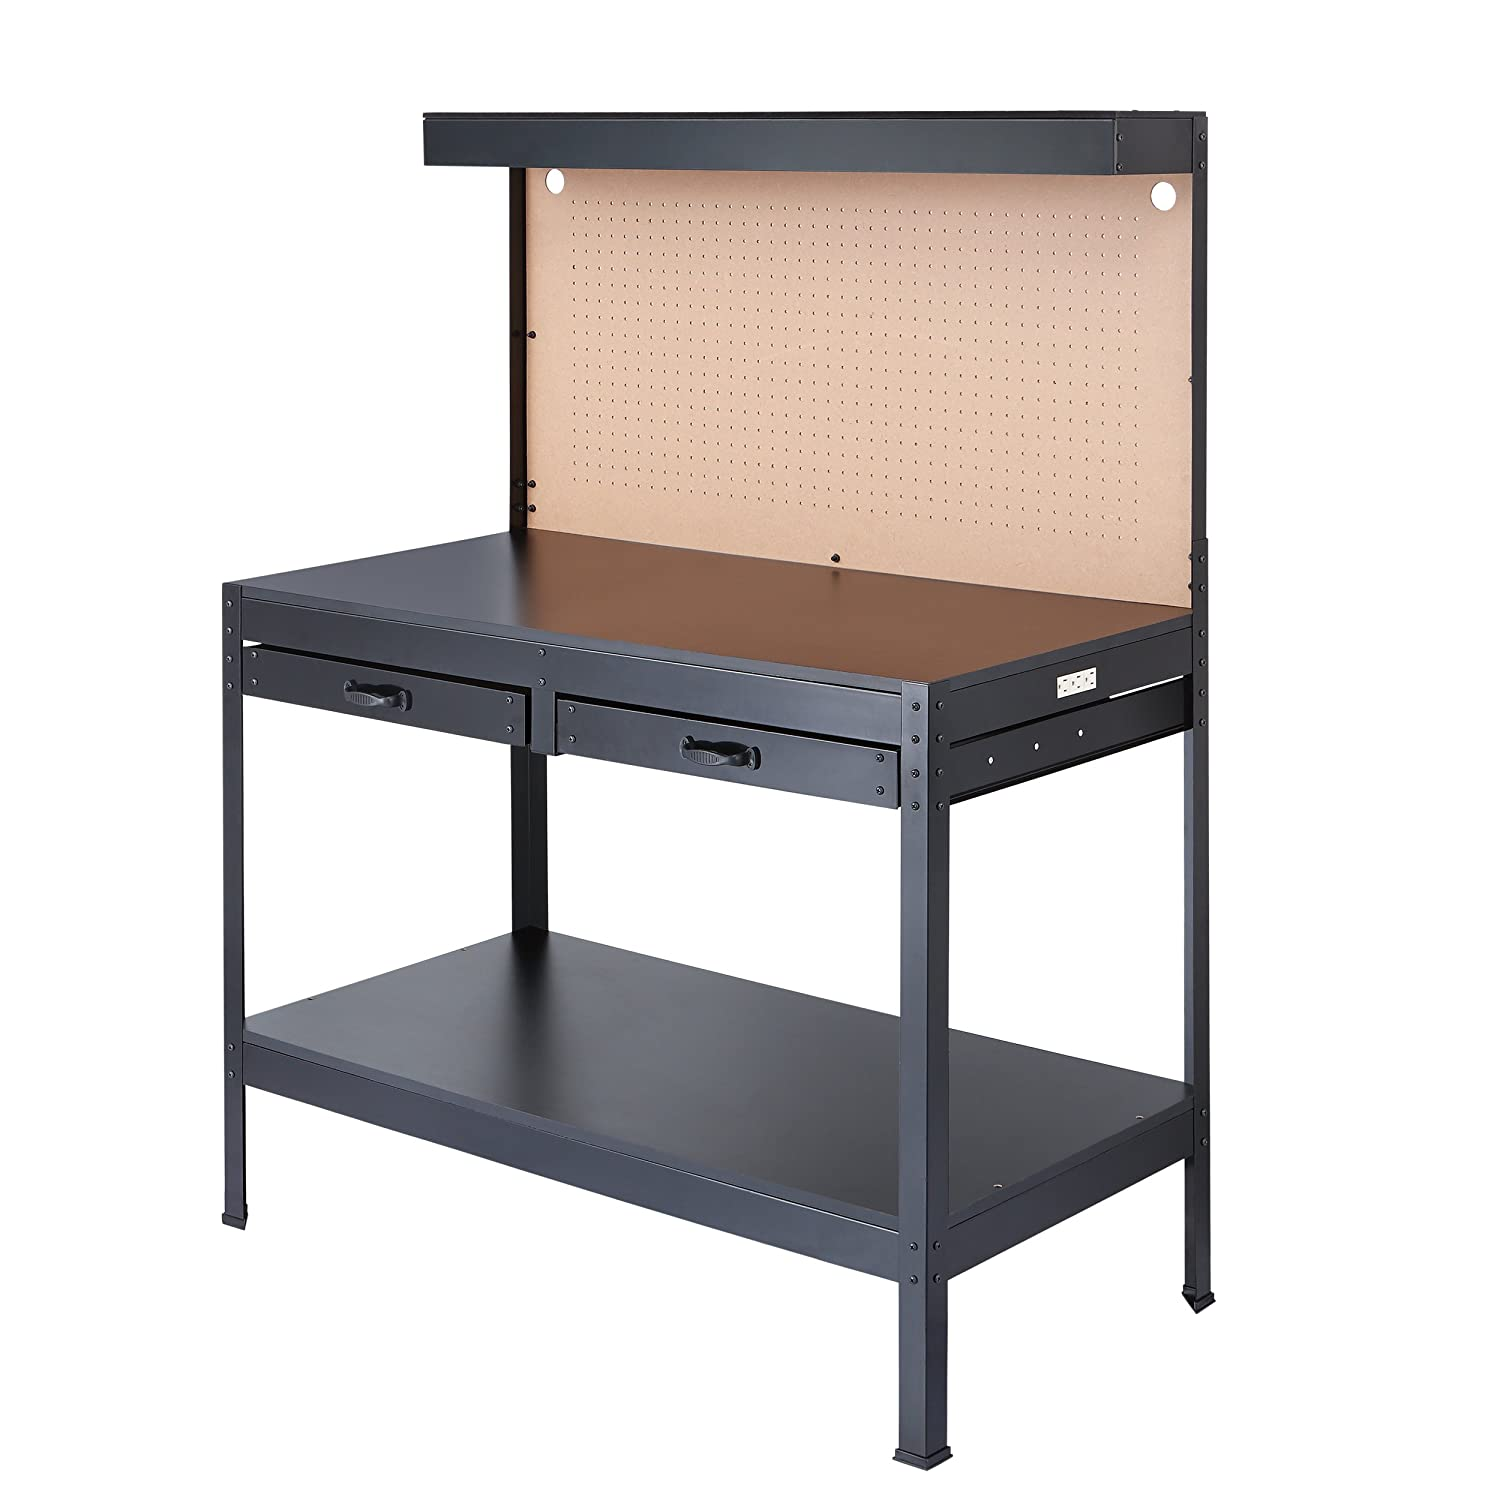 Super 9 Best Garage Workbench Buying Guide And Reviews Oct 2019 Machost Co Dining Chair Design Ideas Machostcouk